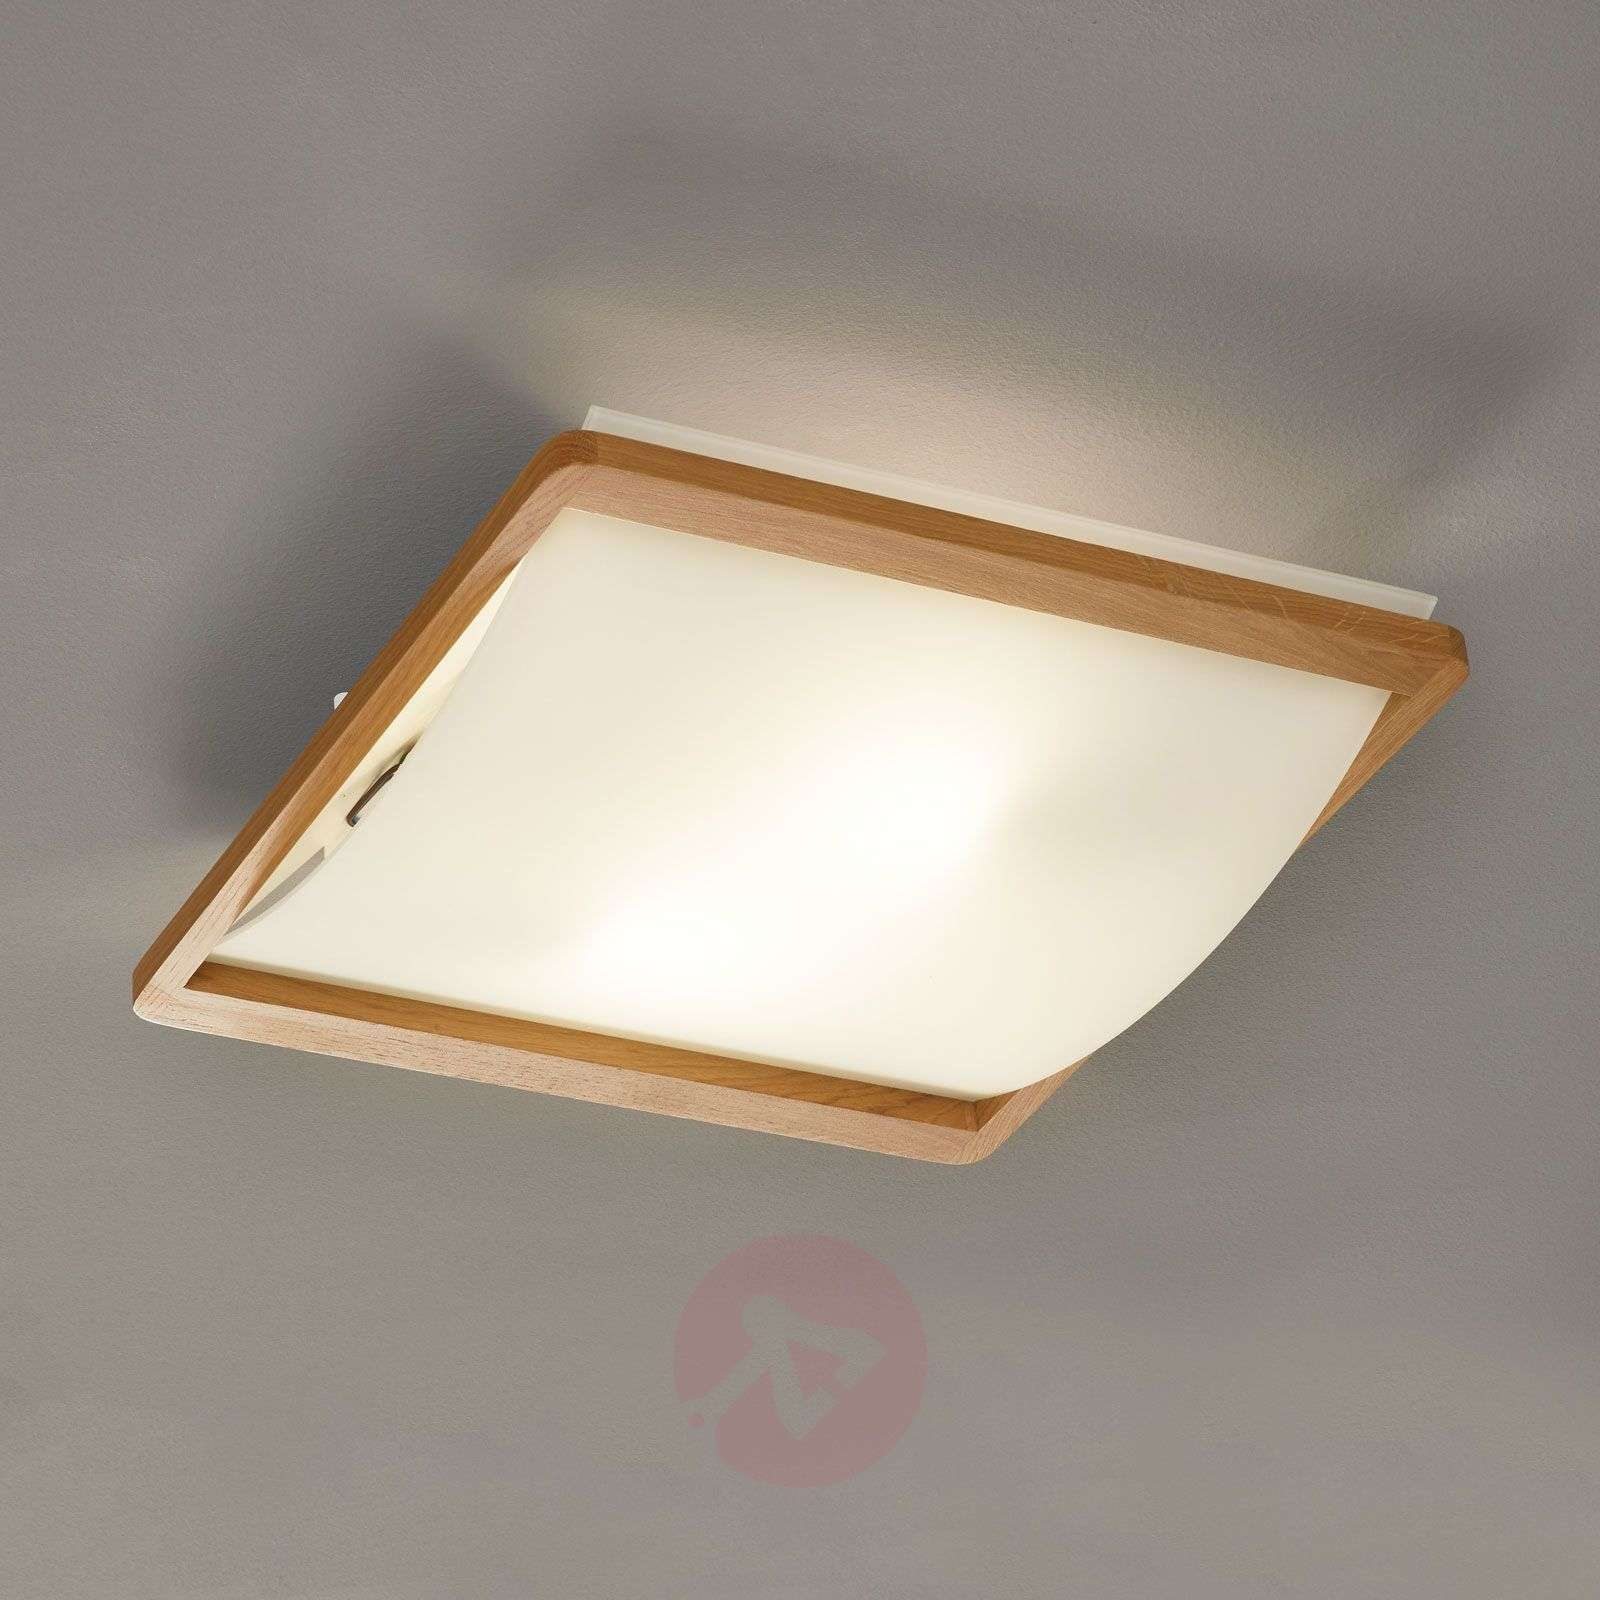 Solido Ceiling Light With Wooden Frame